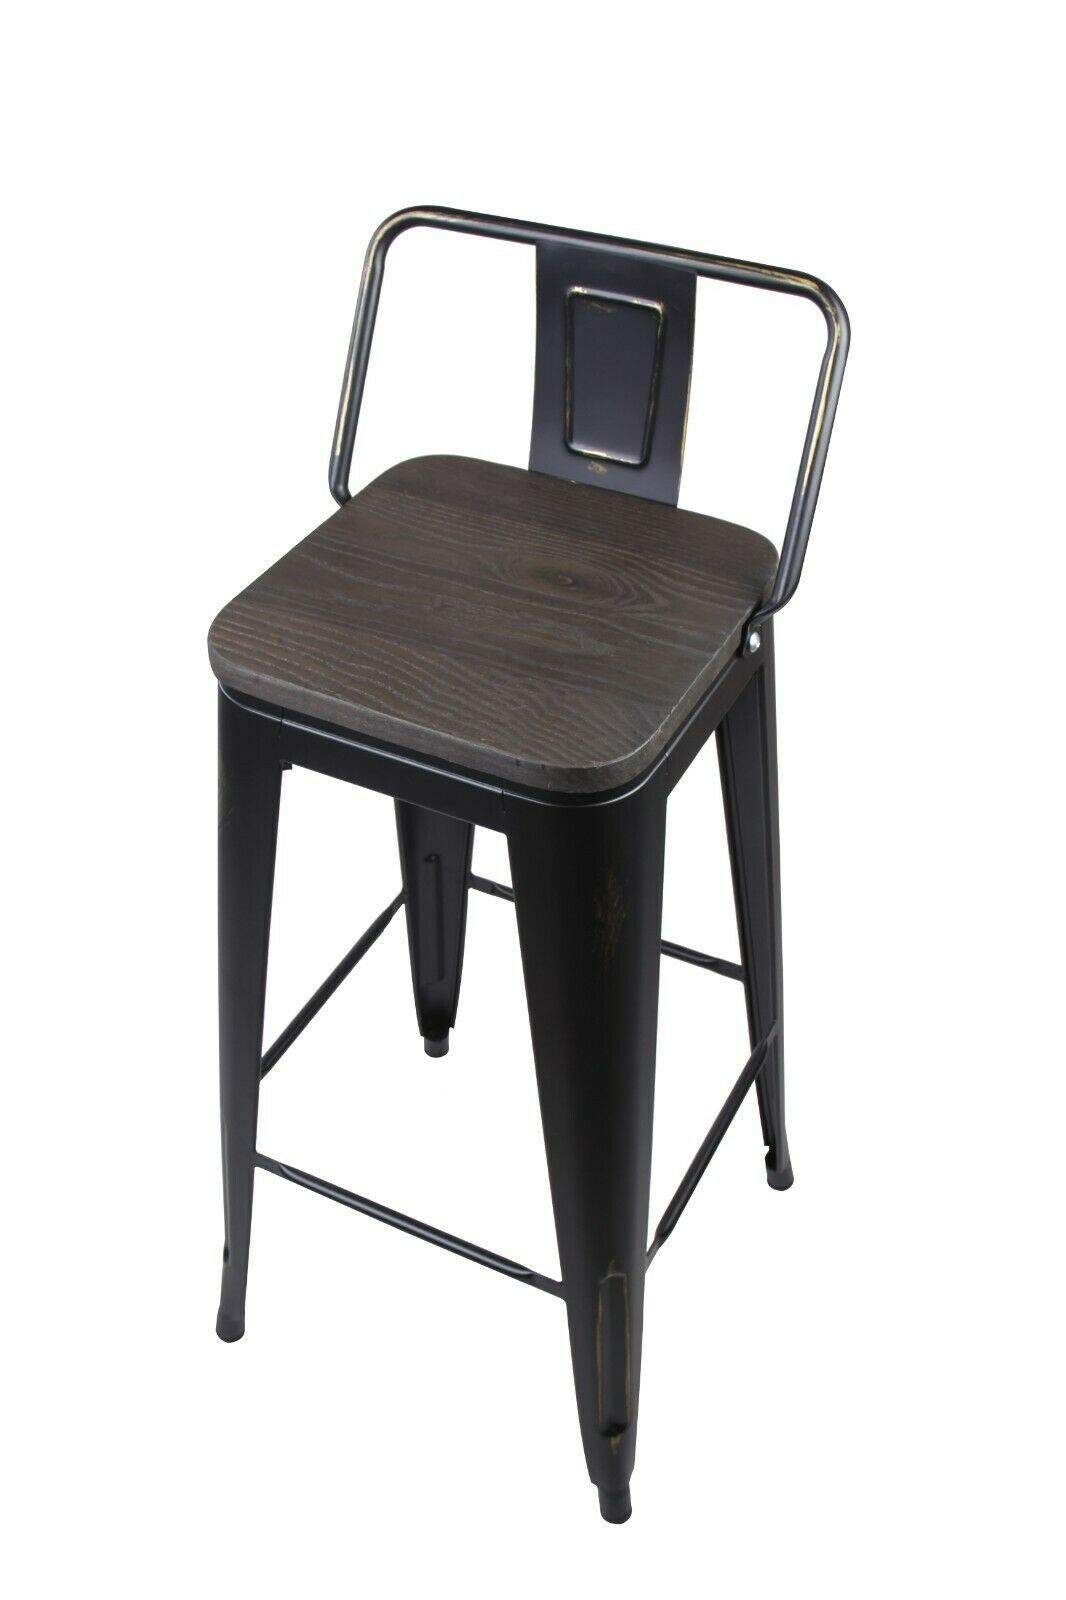 Details About Industrial Style 24 Low Back Black Metal Bar Stool